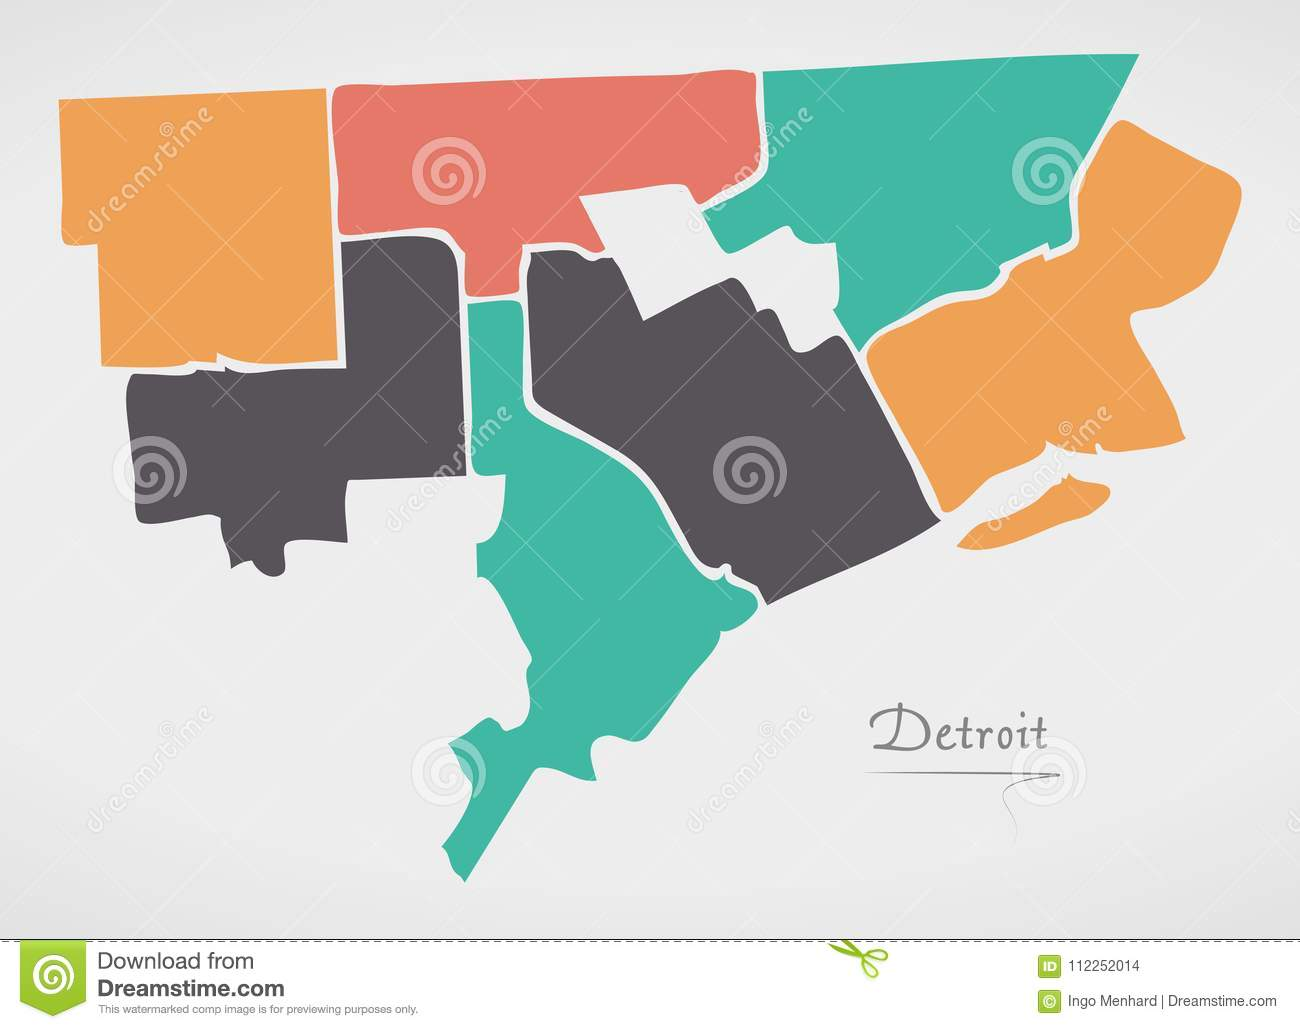 Detroit Michigan Map With Neighborhoods And Modern Round Shapes